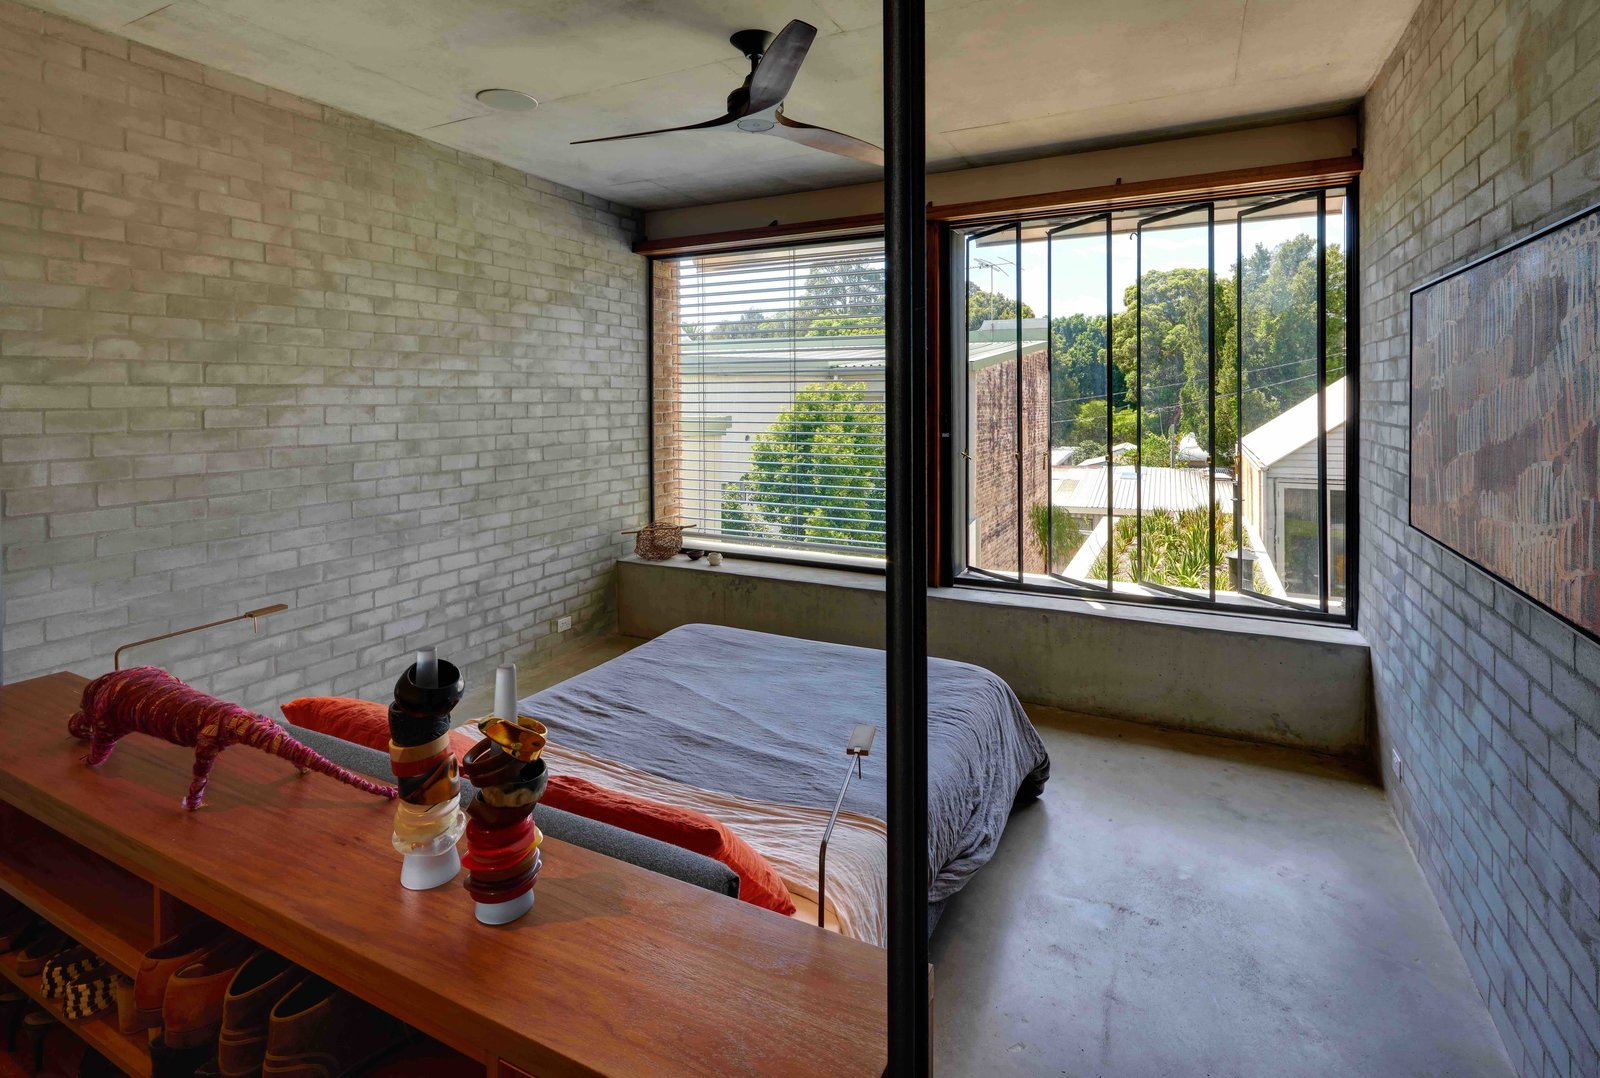 Bedroom, Bed, Storage, Shelves, Concrete Floor, and Wall Lighting  Photo 10 of 17 in Find Out How Light and Precious Outdoor Space Were Introduced to an Old Australian Cottage